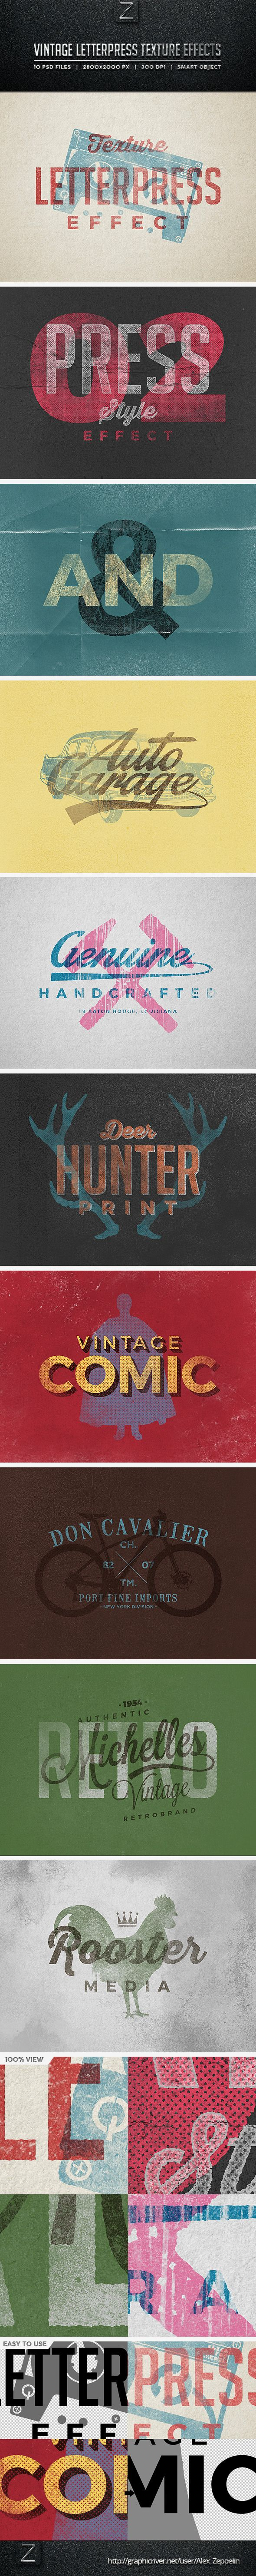 Vintage Letterpress Texture Effects #photoshop Download here: http://graphicriver.net/item/vintage-letterpress-texture-effects/10340387?ref=ksioks